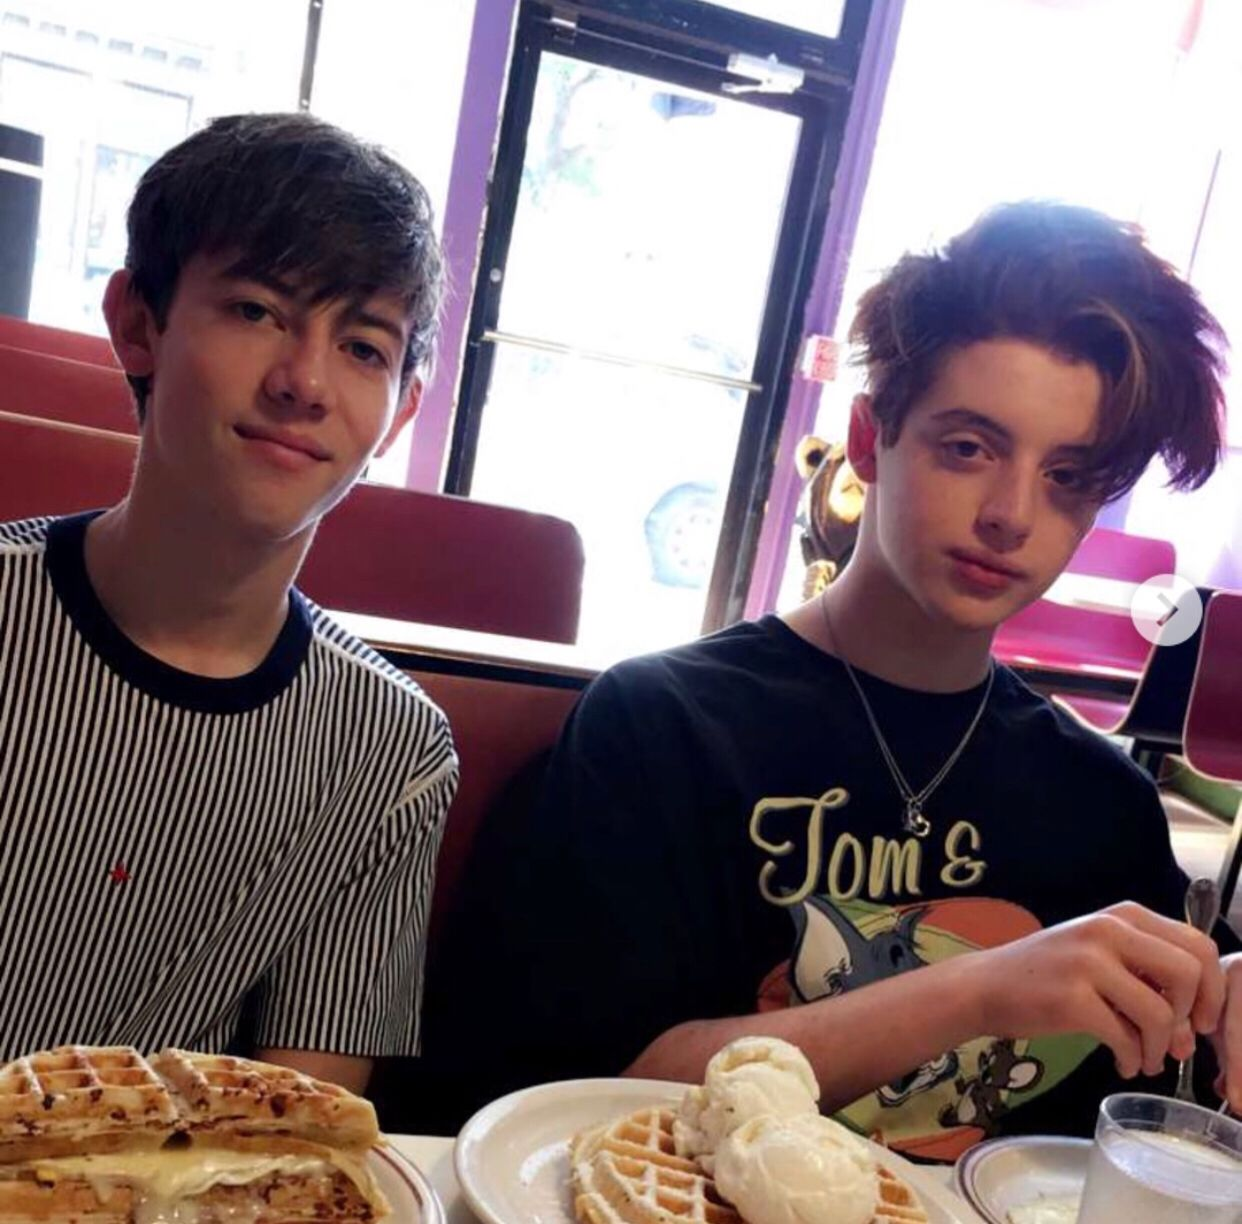 Pin By Melissa Phantom Hive On Thomas Barbusca Griffin Gluck Griffin Aesthetic Movies